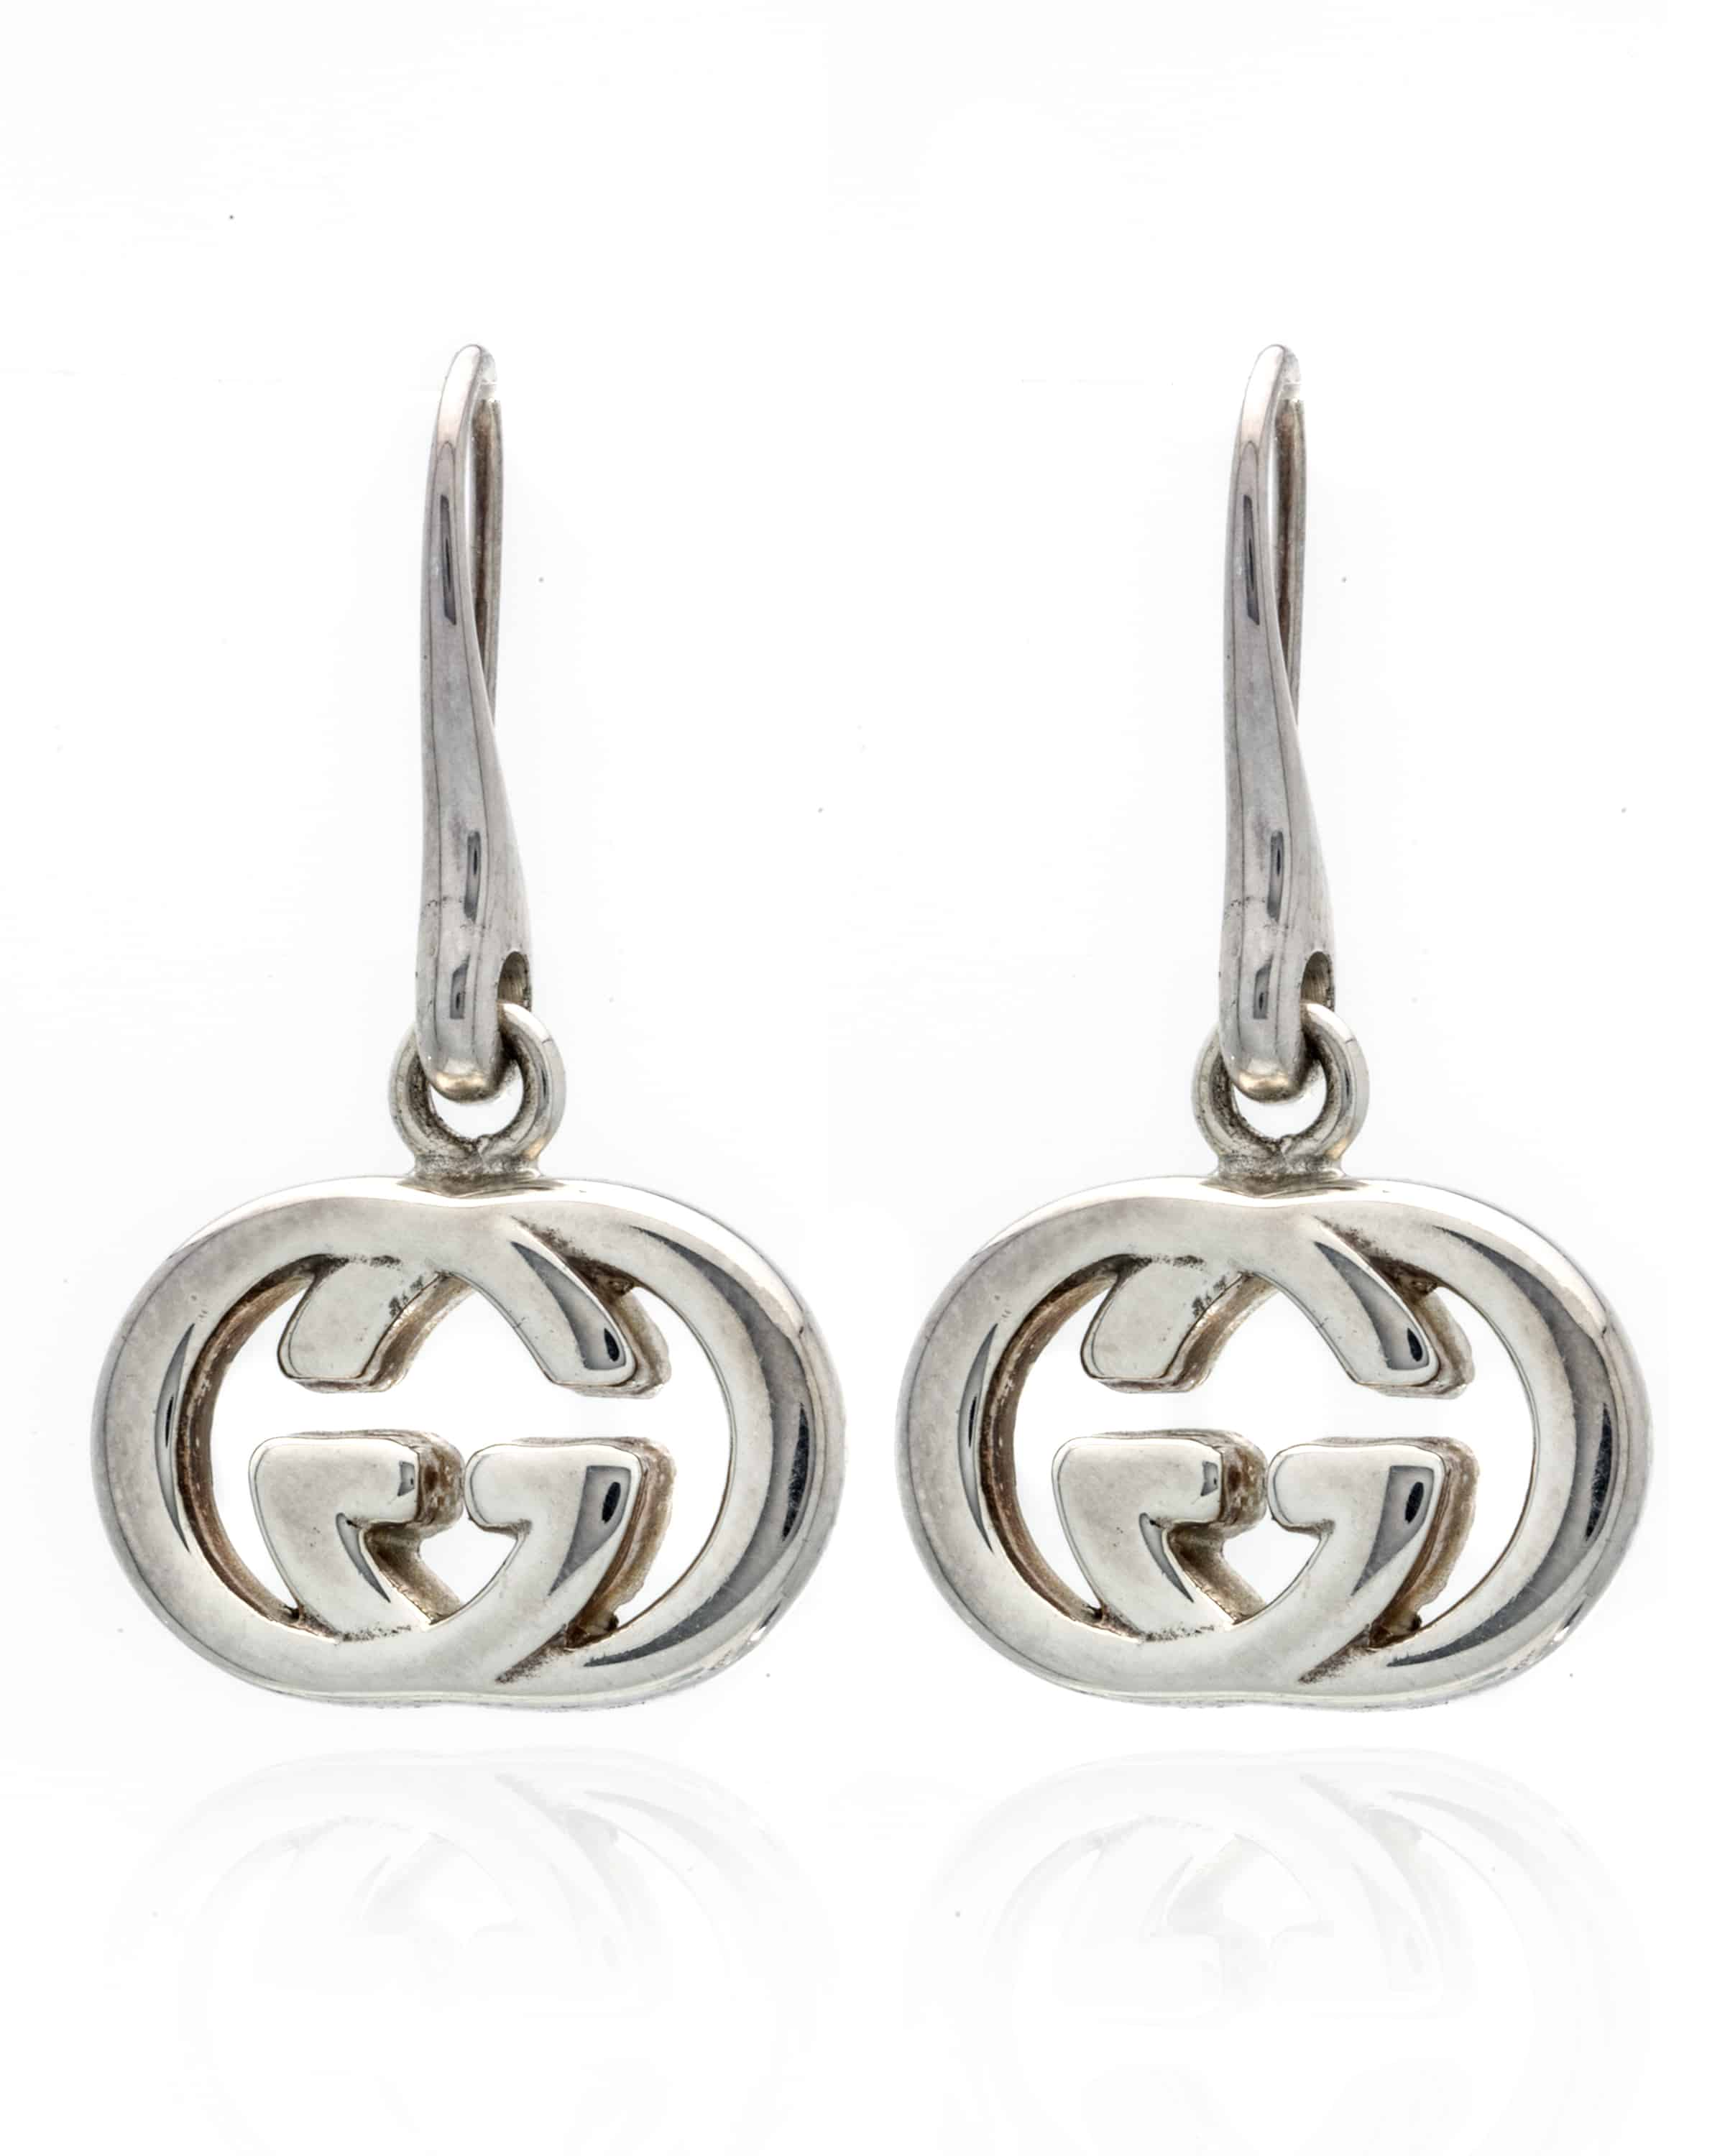 8198999e856 ... Silver Drop Earrings YBD22332100100U. Sale! YBD22332100100U A   YBD22332100100U C  YBD22332100100U B. YBD22332100100U A